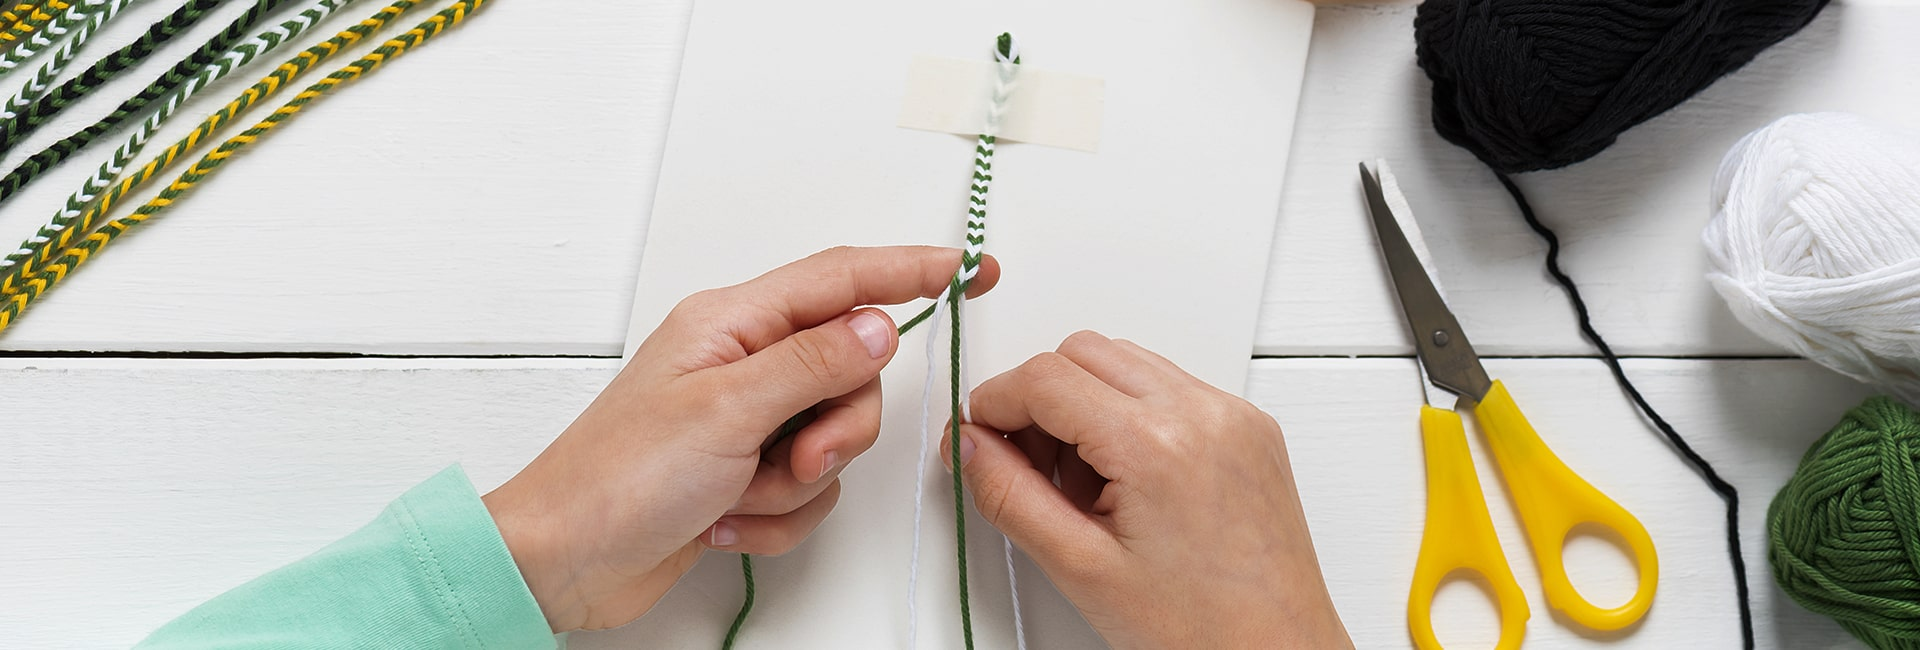 How to make bracelets at home with thread